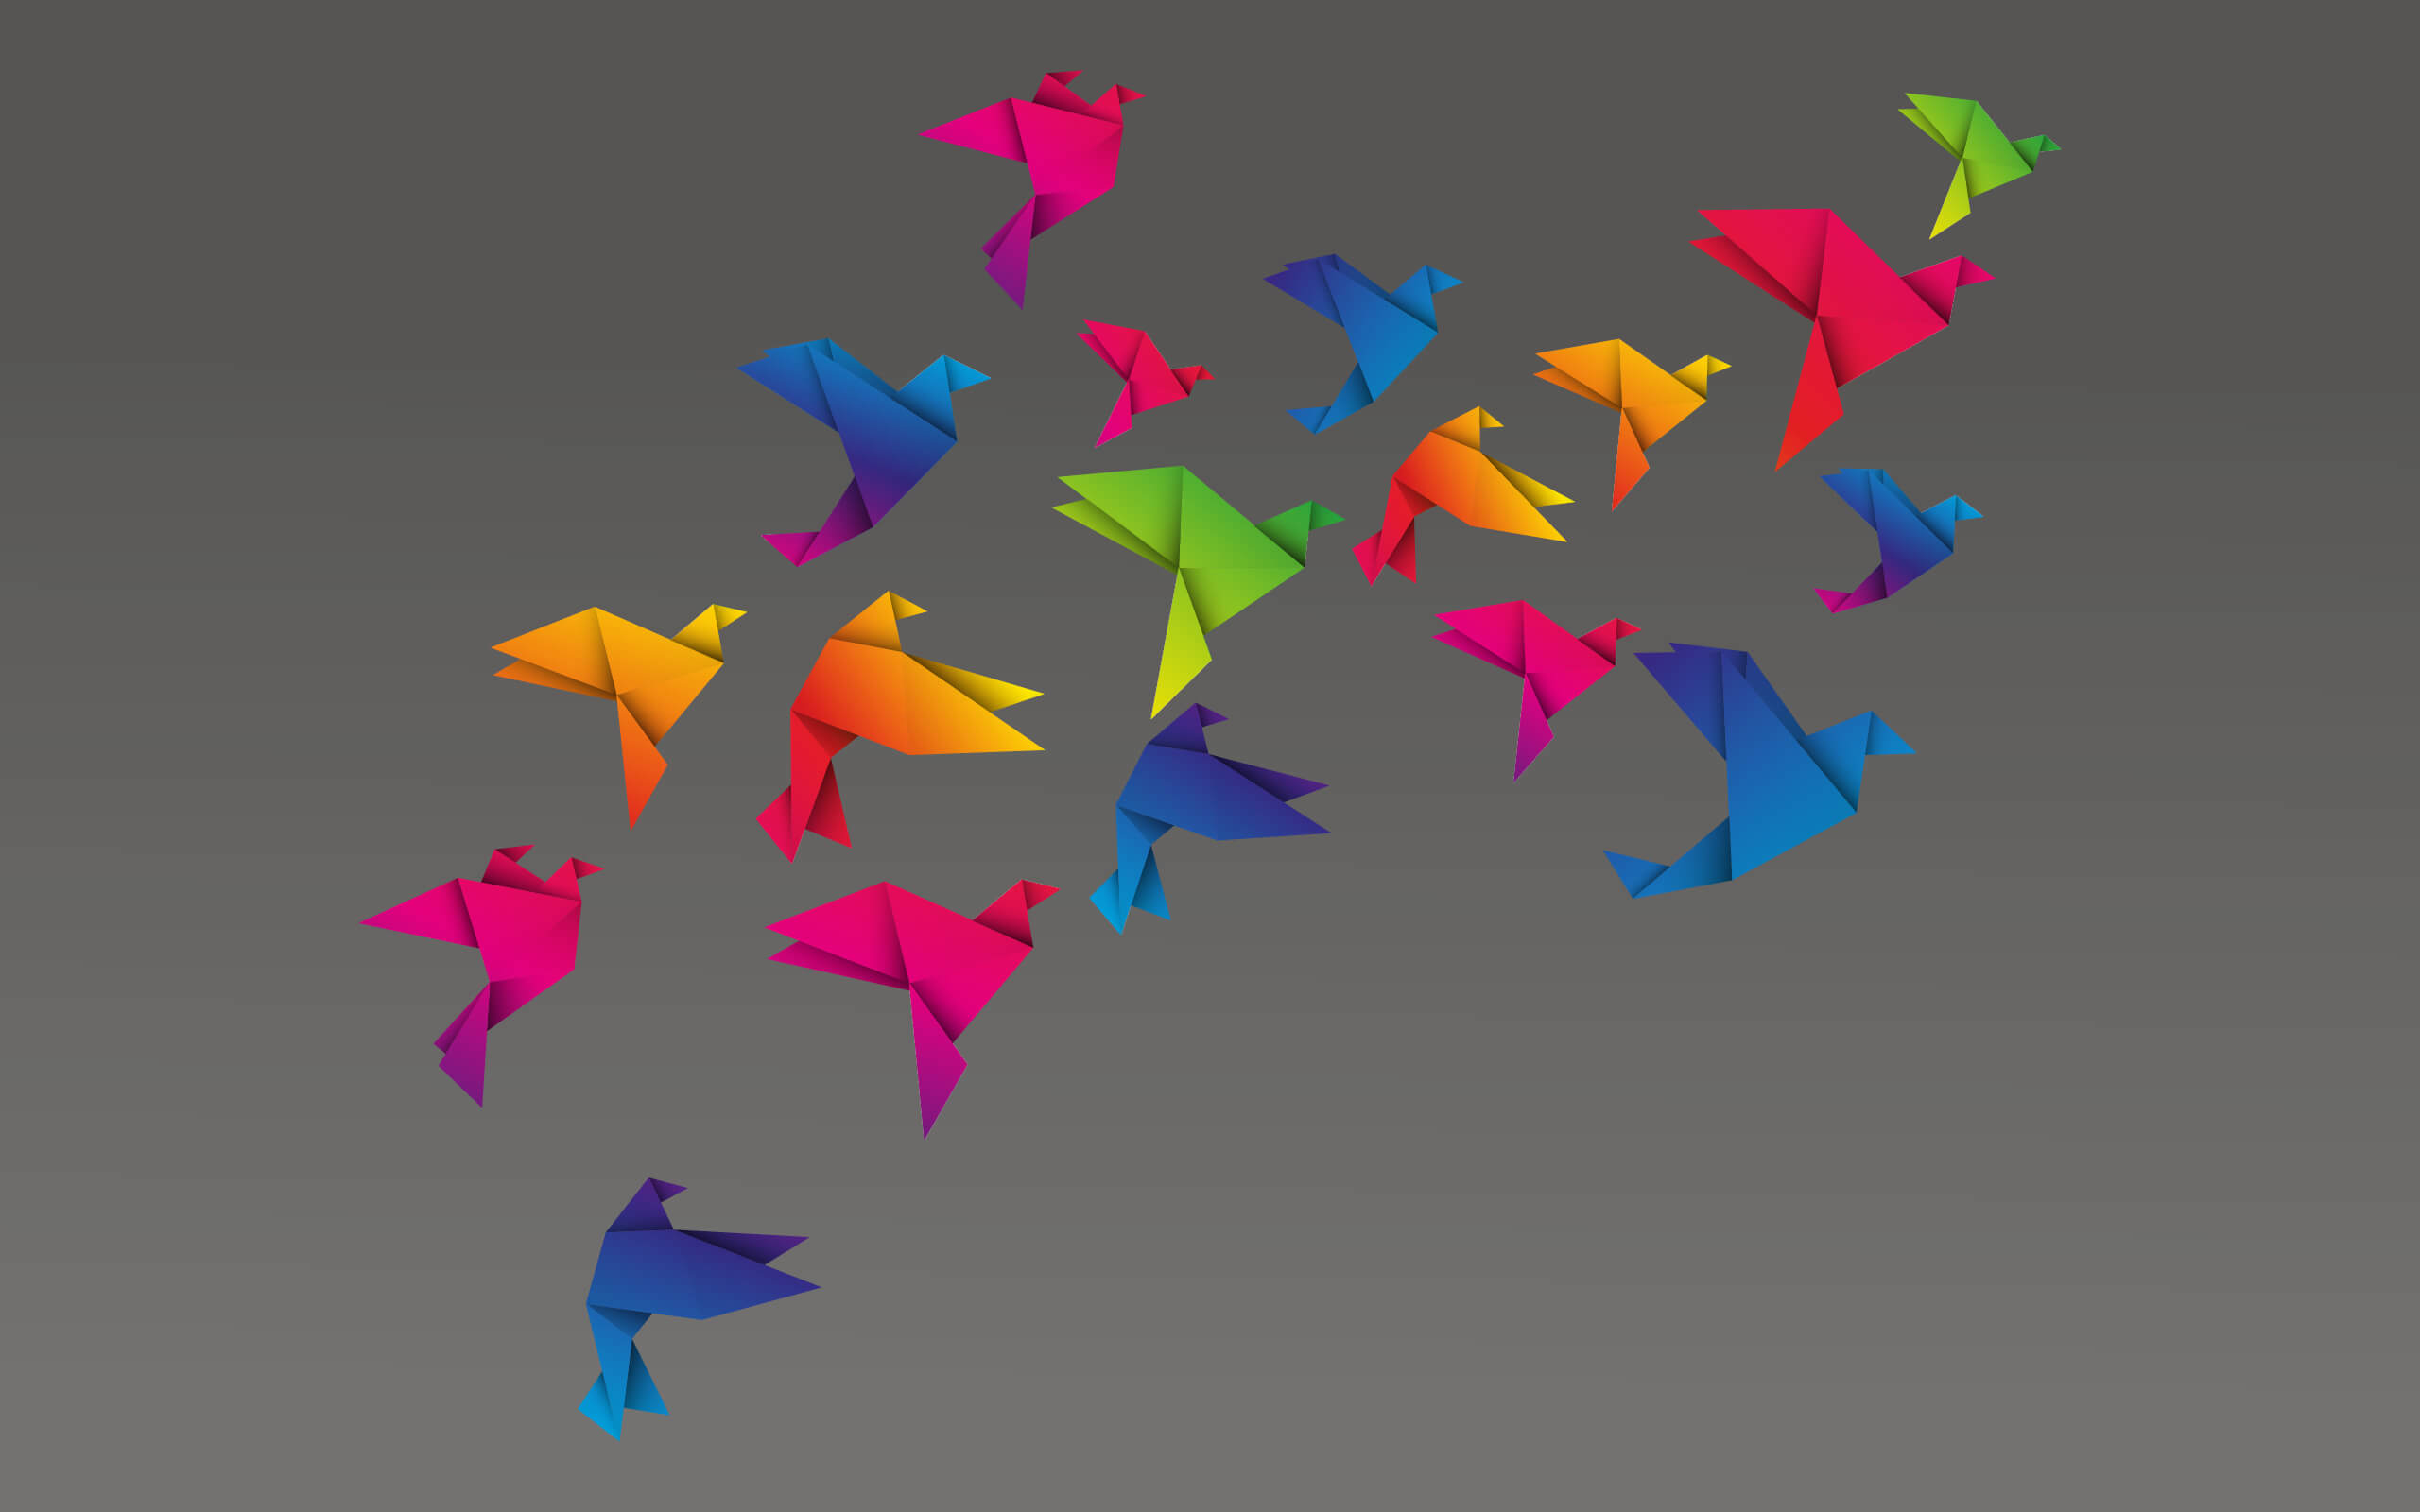 Picture of paper birds flying